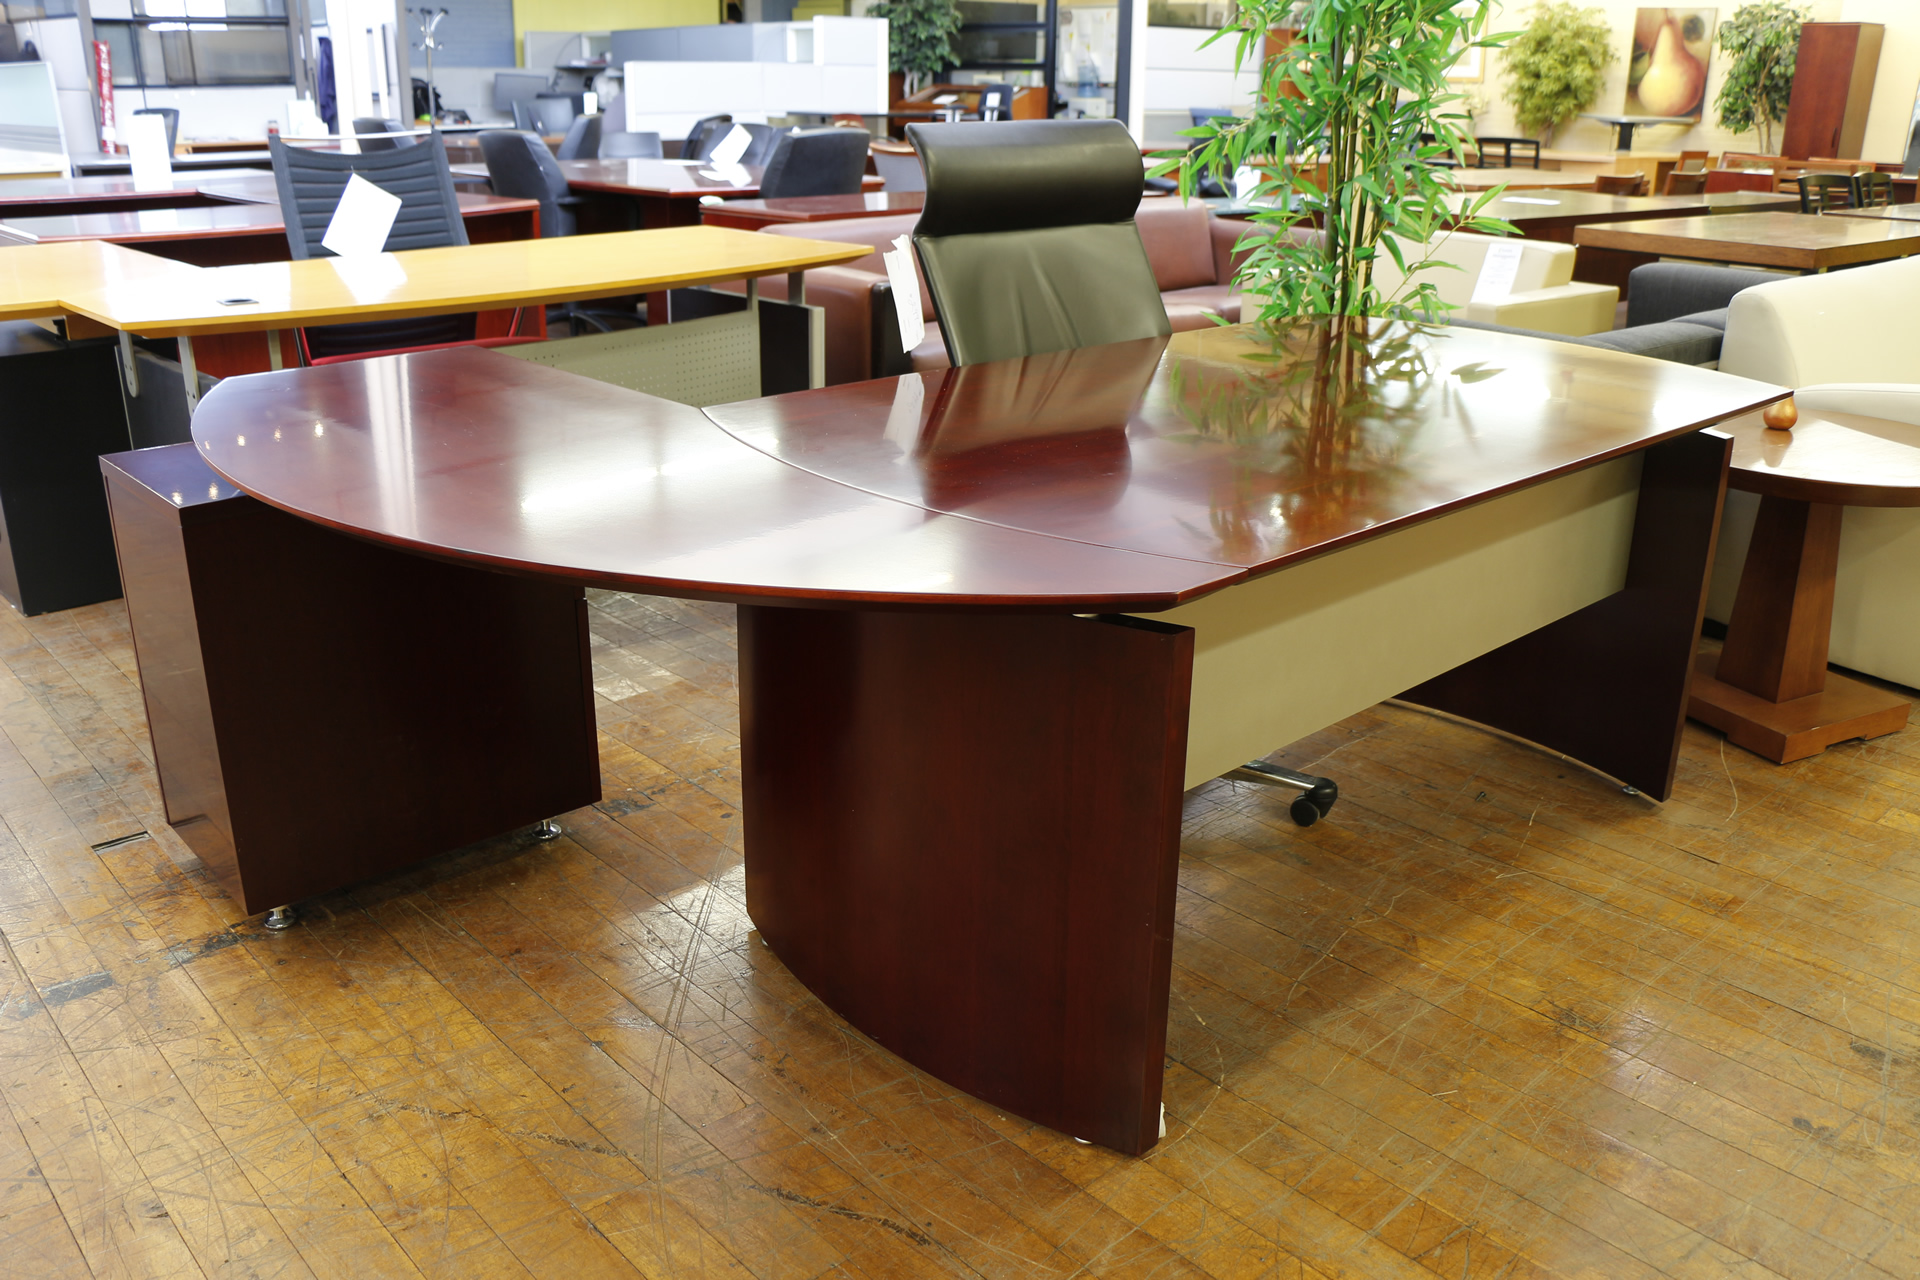 peartreeofficefurniture_peartreeofficefurniture_mg_4964.jpg